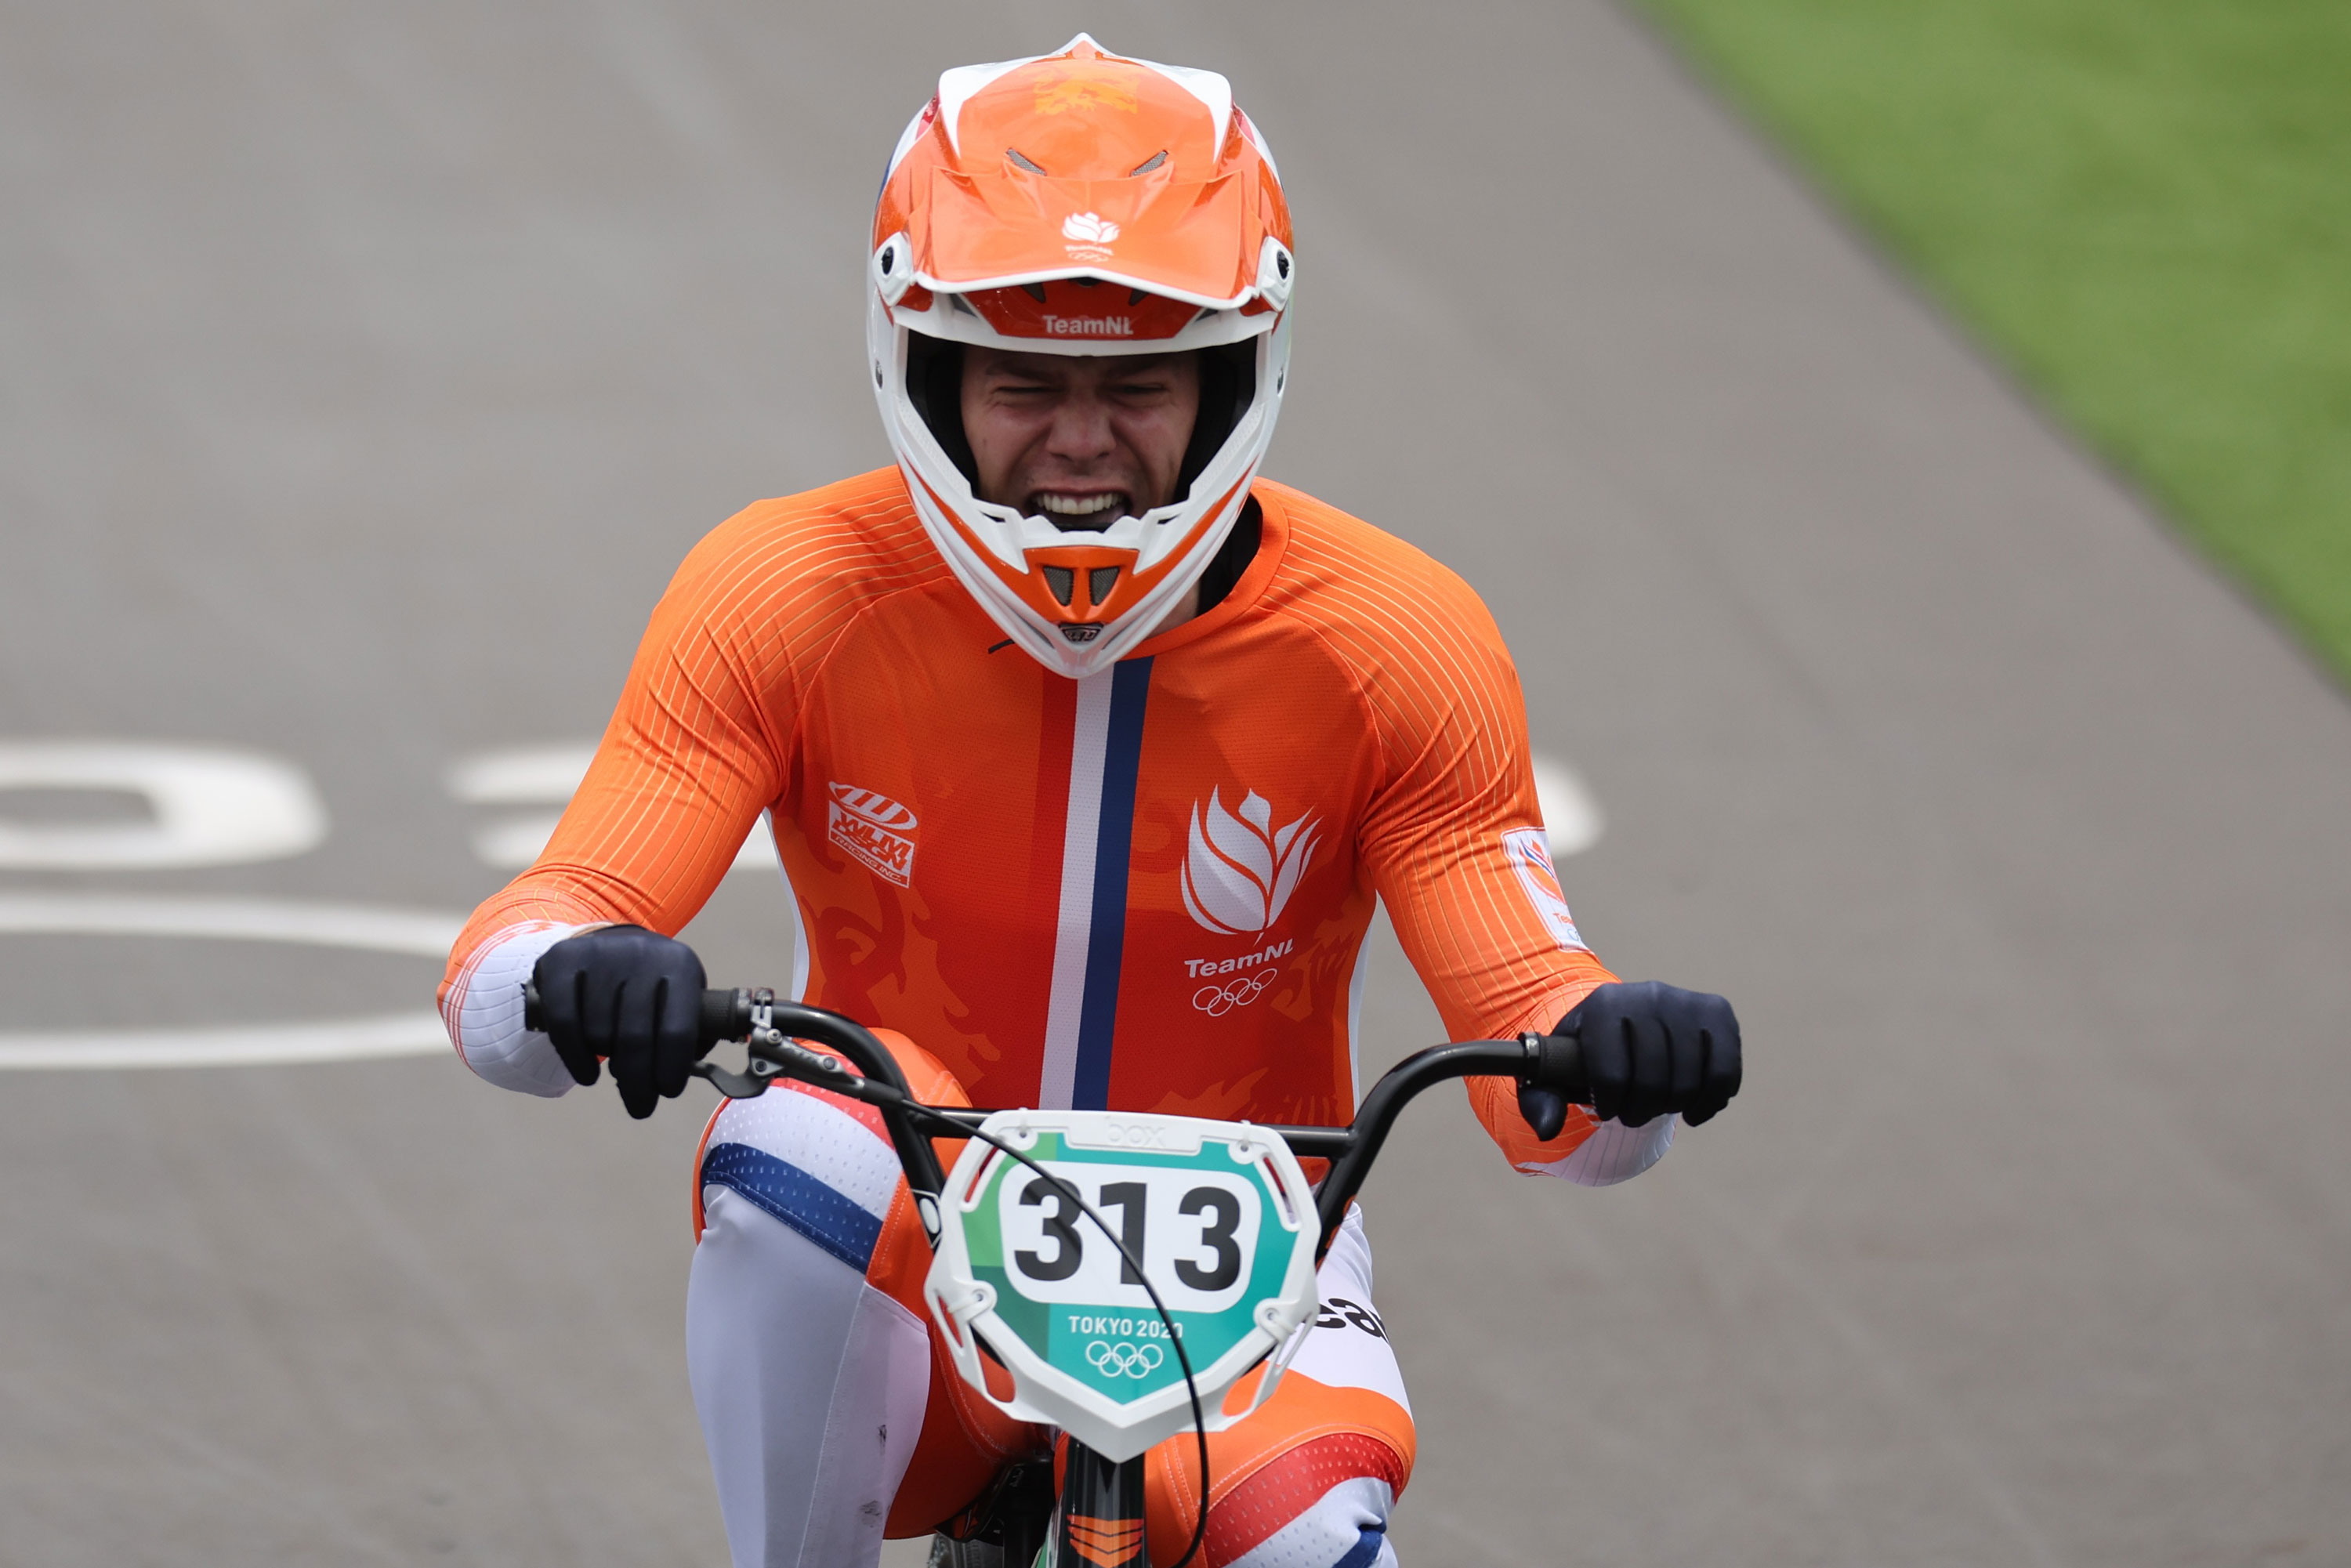 Niek Kimmann of the Netherlands celebrates after winning gold in the BMX individual.